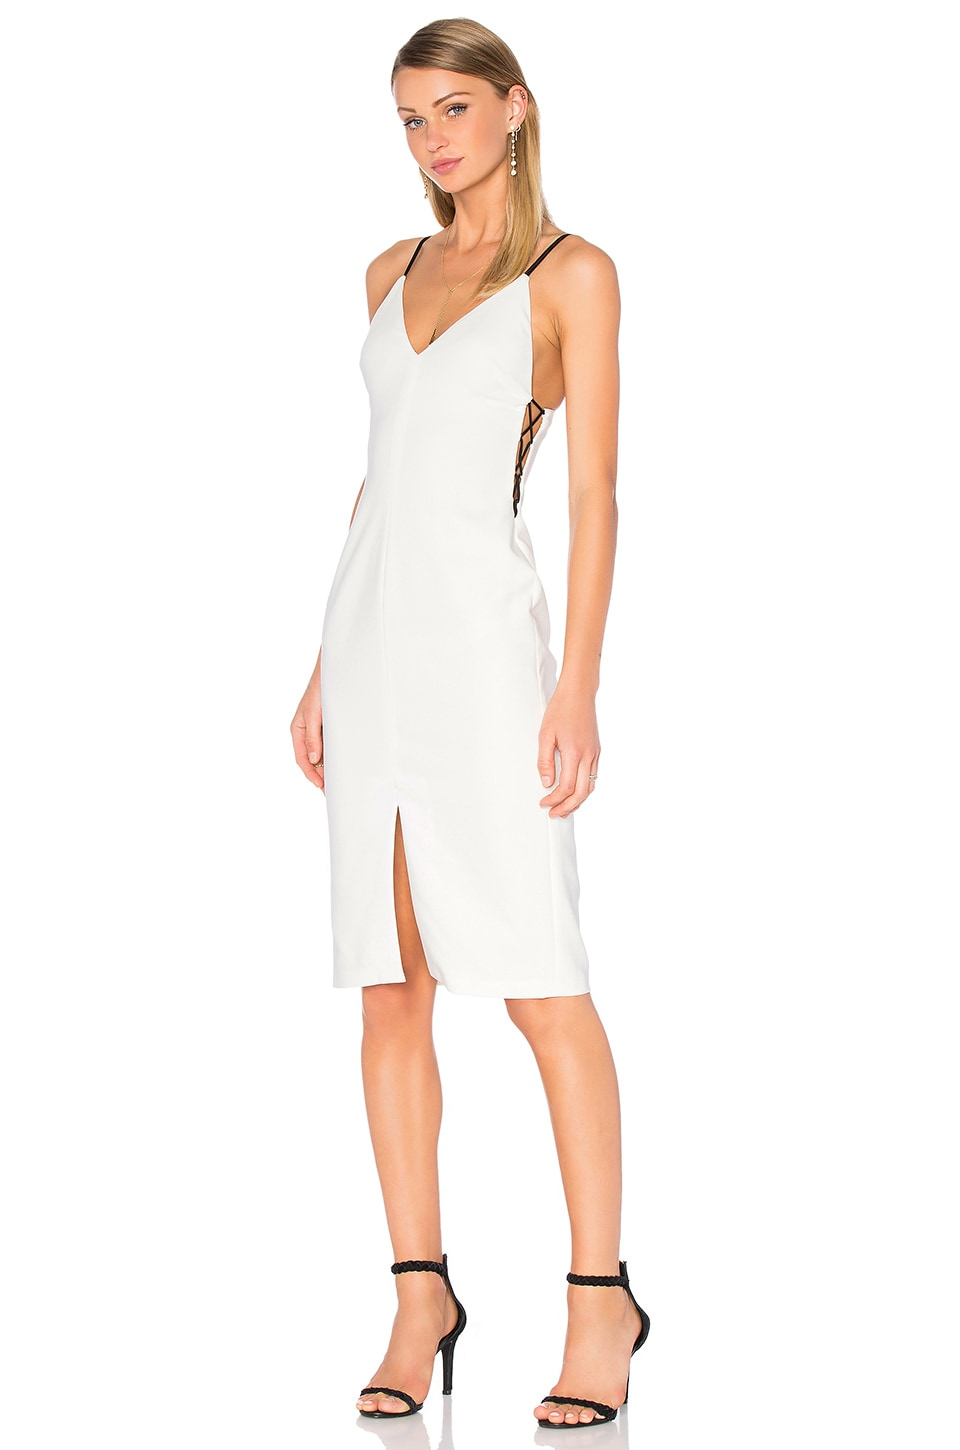 Alice   Olivia Sofie Lace Up Side Dress in Off White & Black | REVOLVE